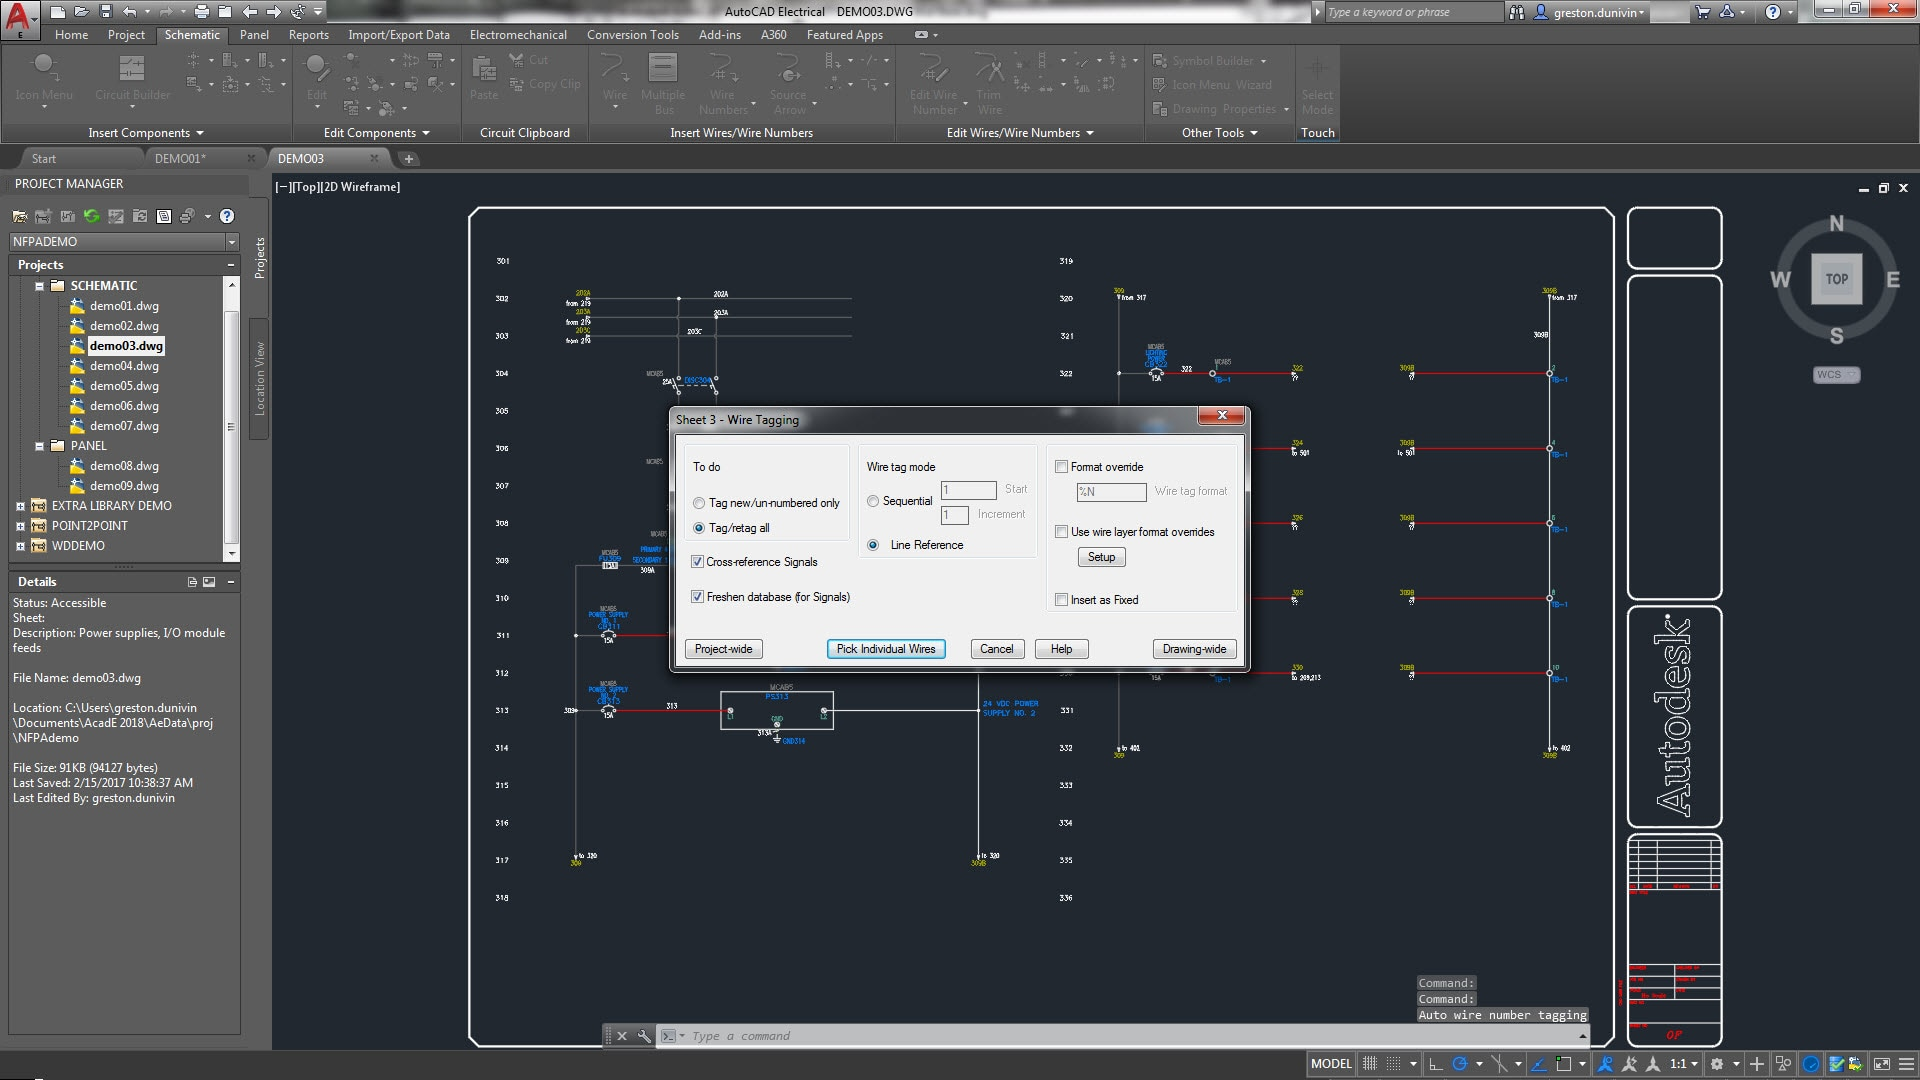 Autocad Electrical Toolset Design Software Data To The Pc See Following Wiring Diagram For A Sample Of How Schematic